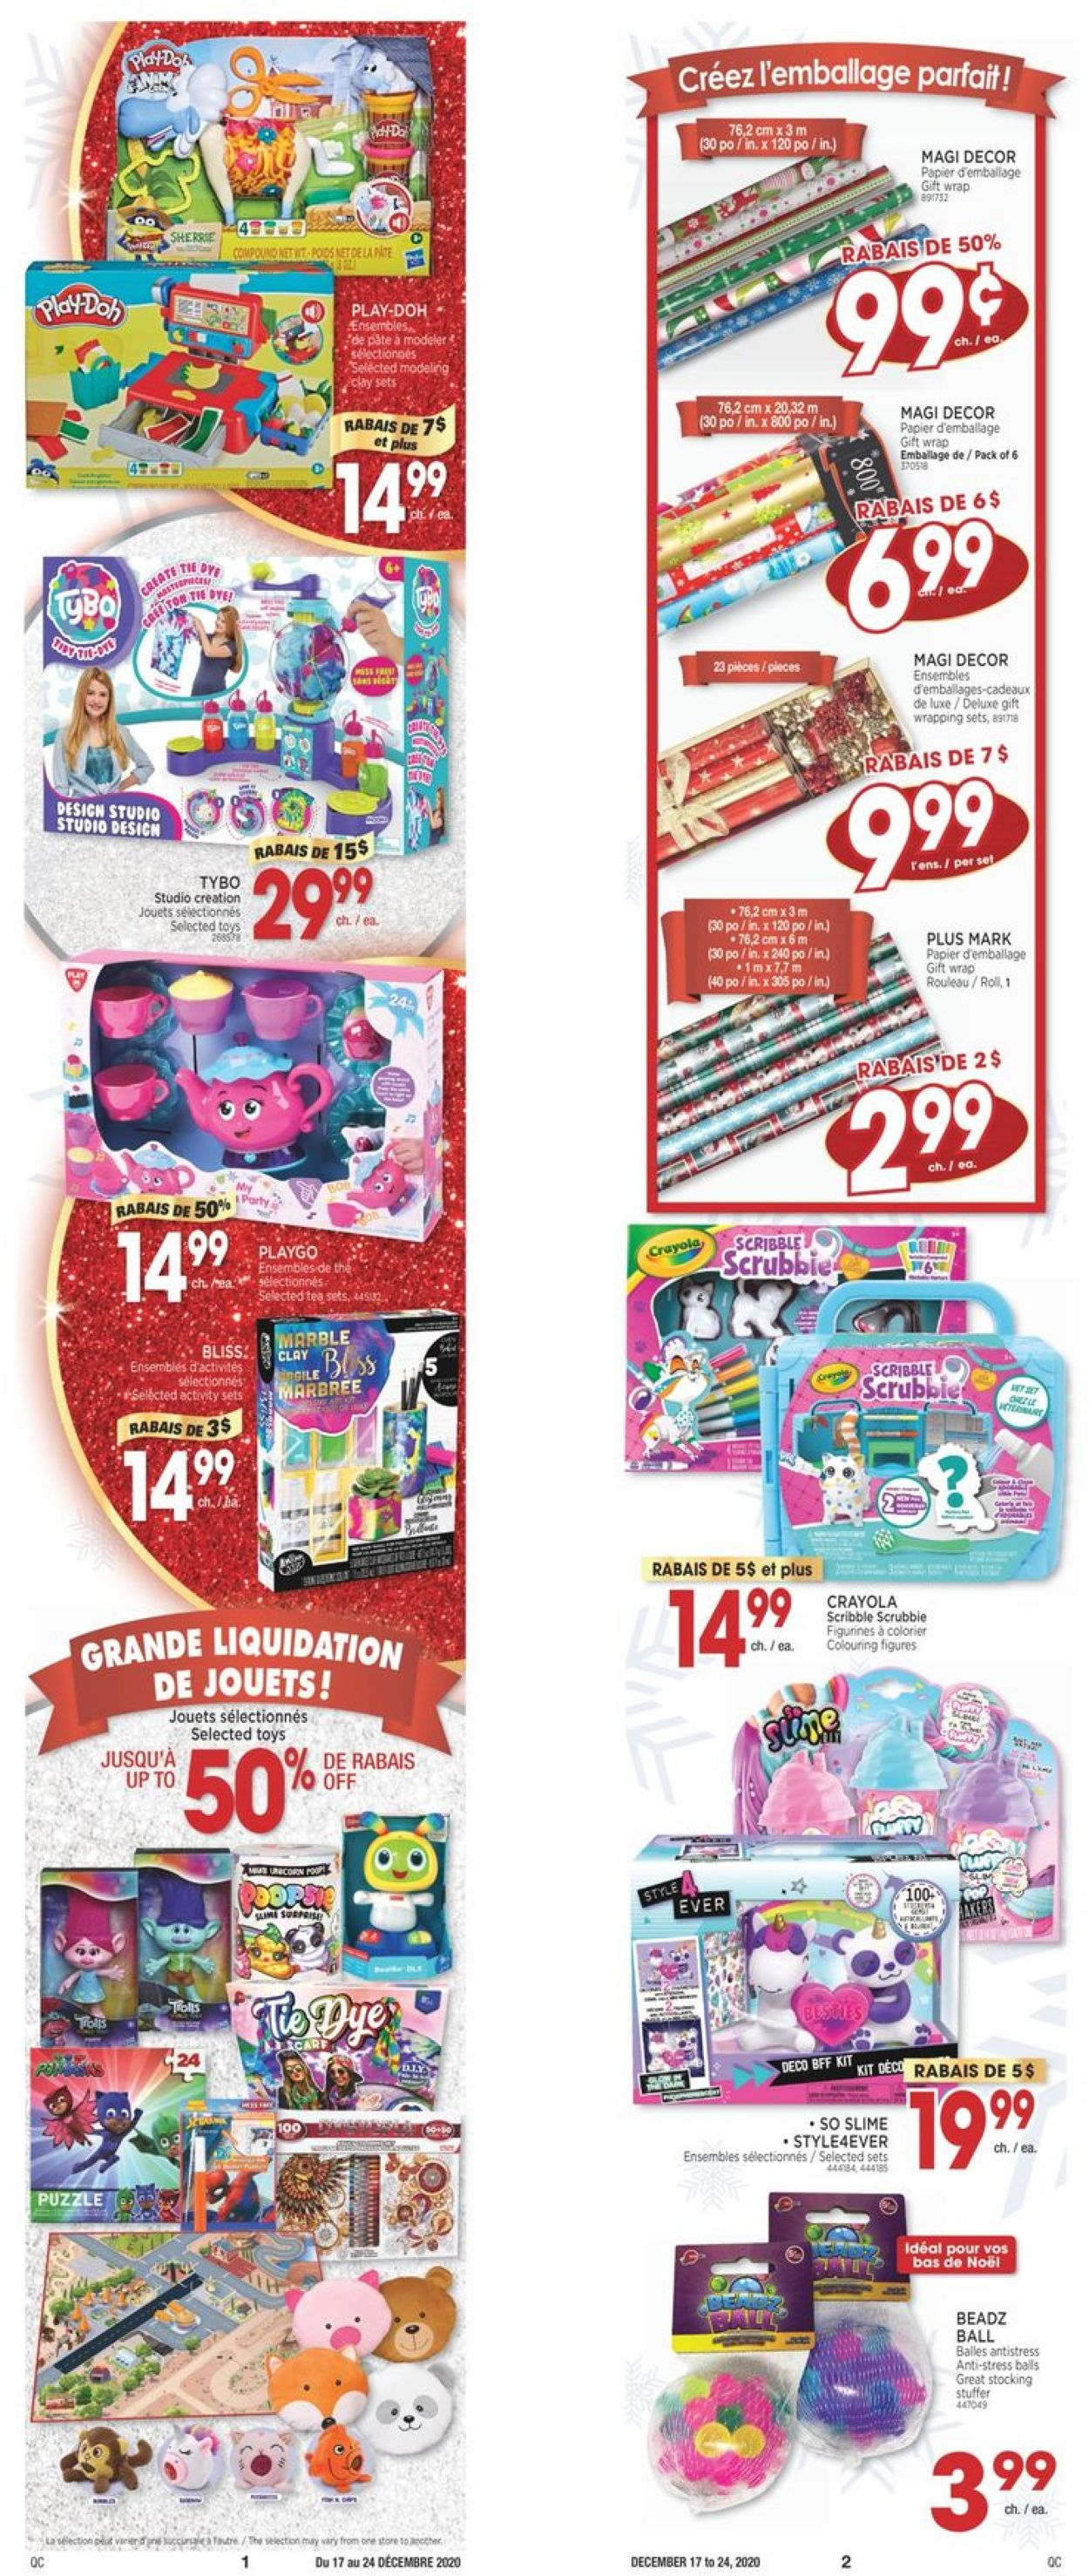 Jean Coutu - Christmas 2020 Flyer - 12/17-12/24/2020